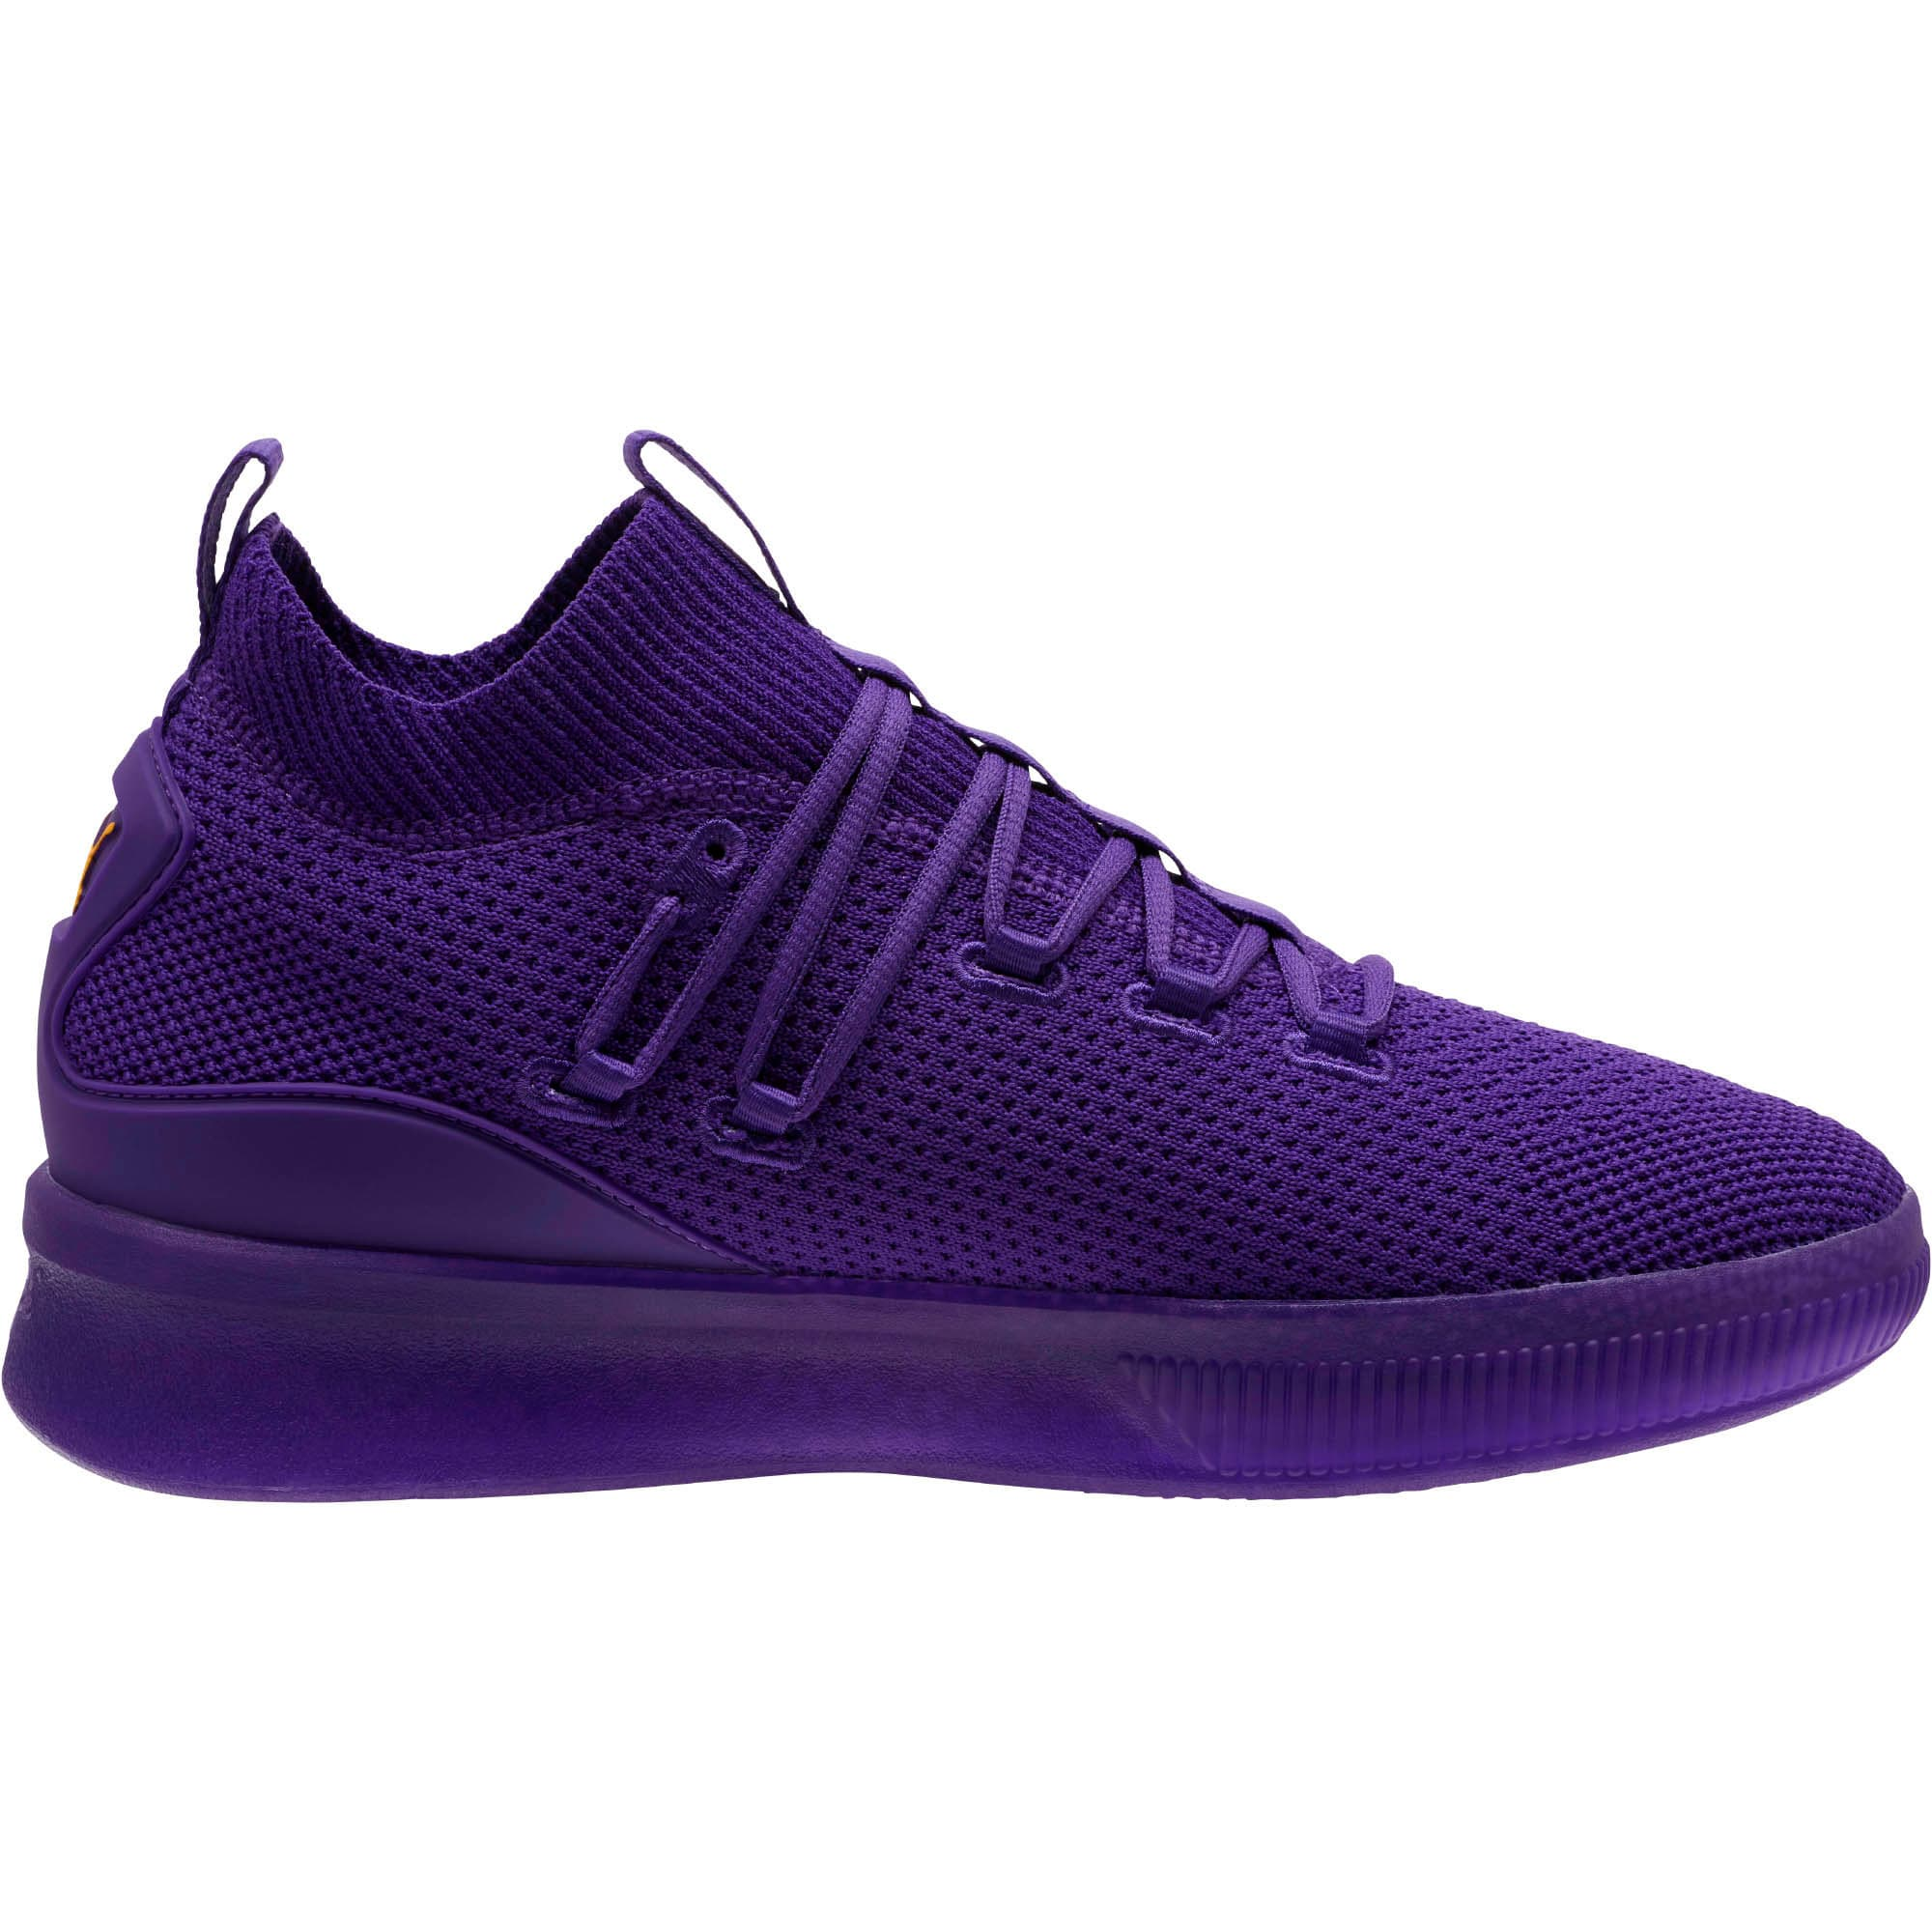 Thumbnail 4 of Clyde Court Core Basketball Shoes, Prism Violet, medium